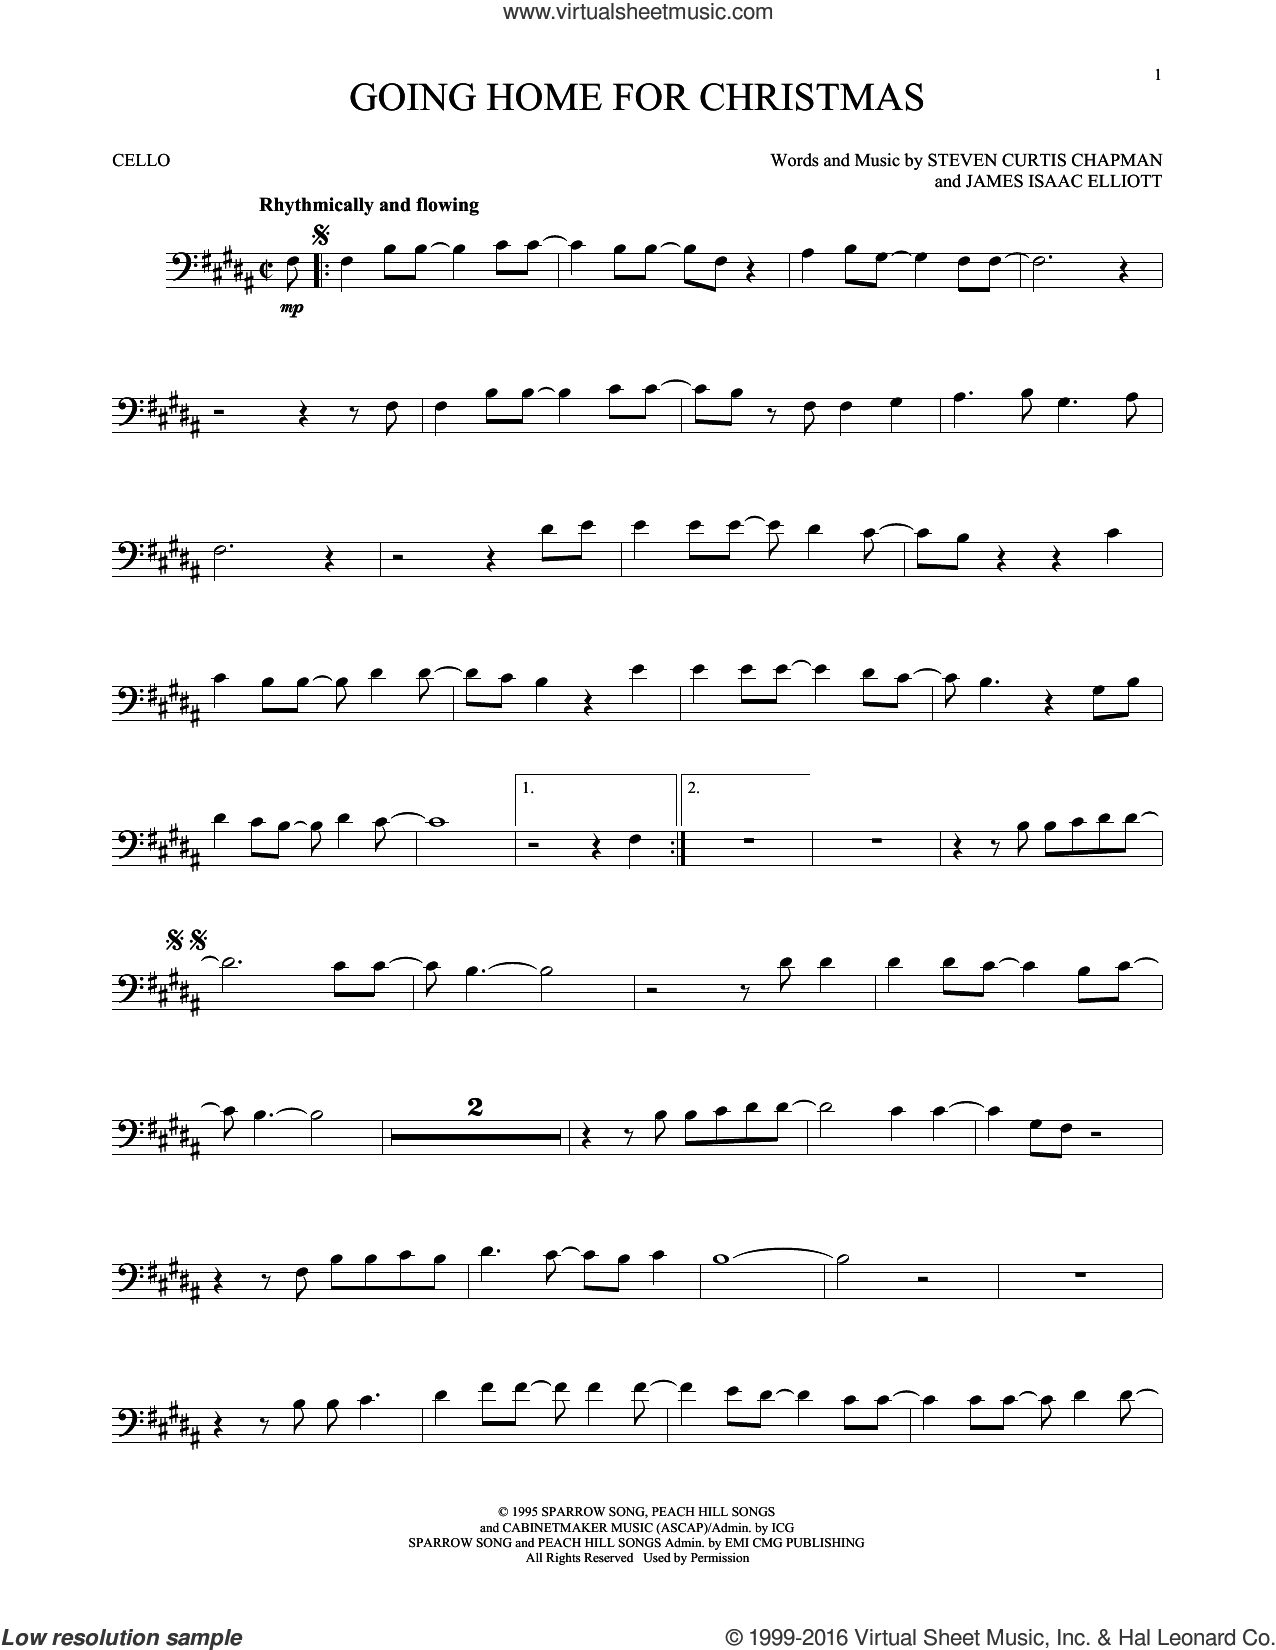 Going Home For Christmas sheet music for cello solo by James Isaac Elliott and Steven Curtis Chapman. Score Image Preview.